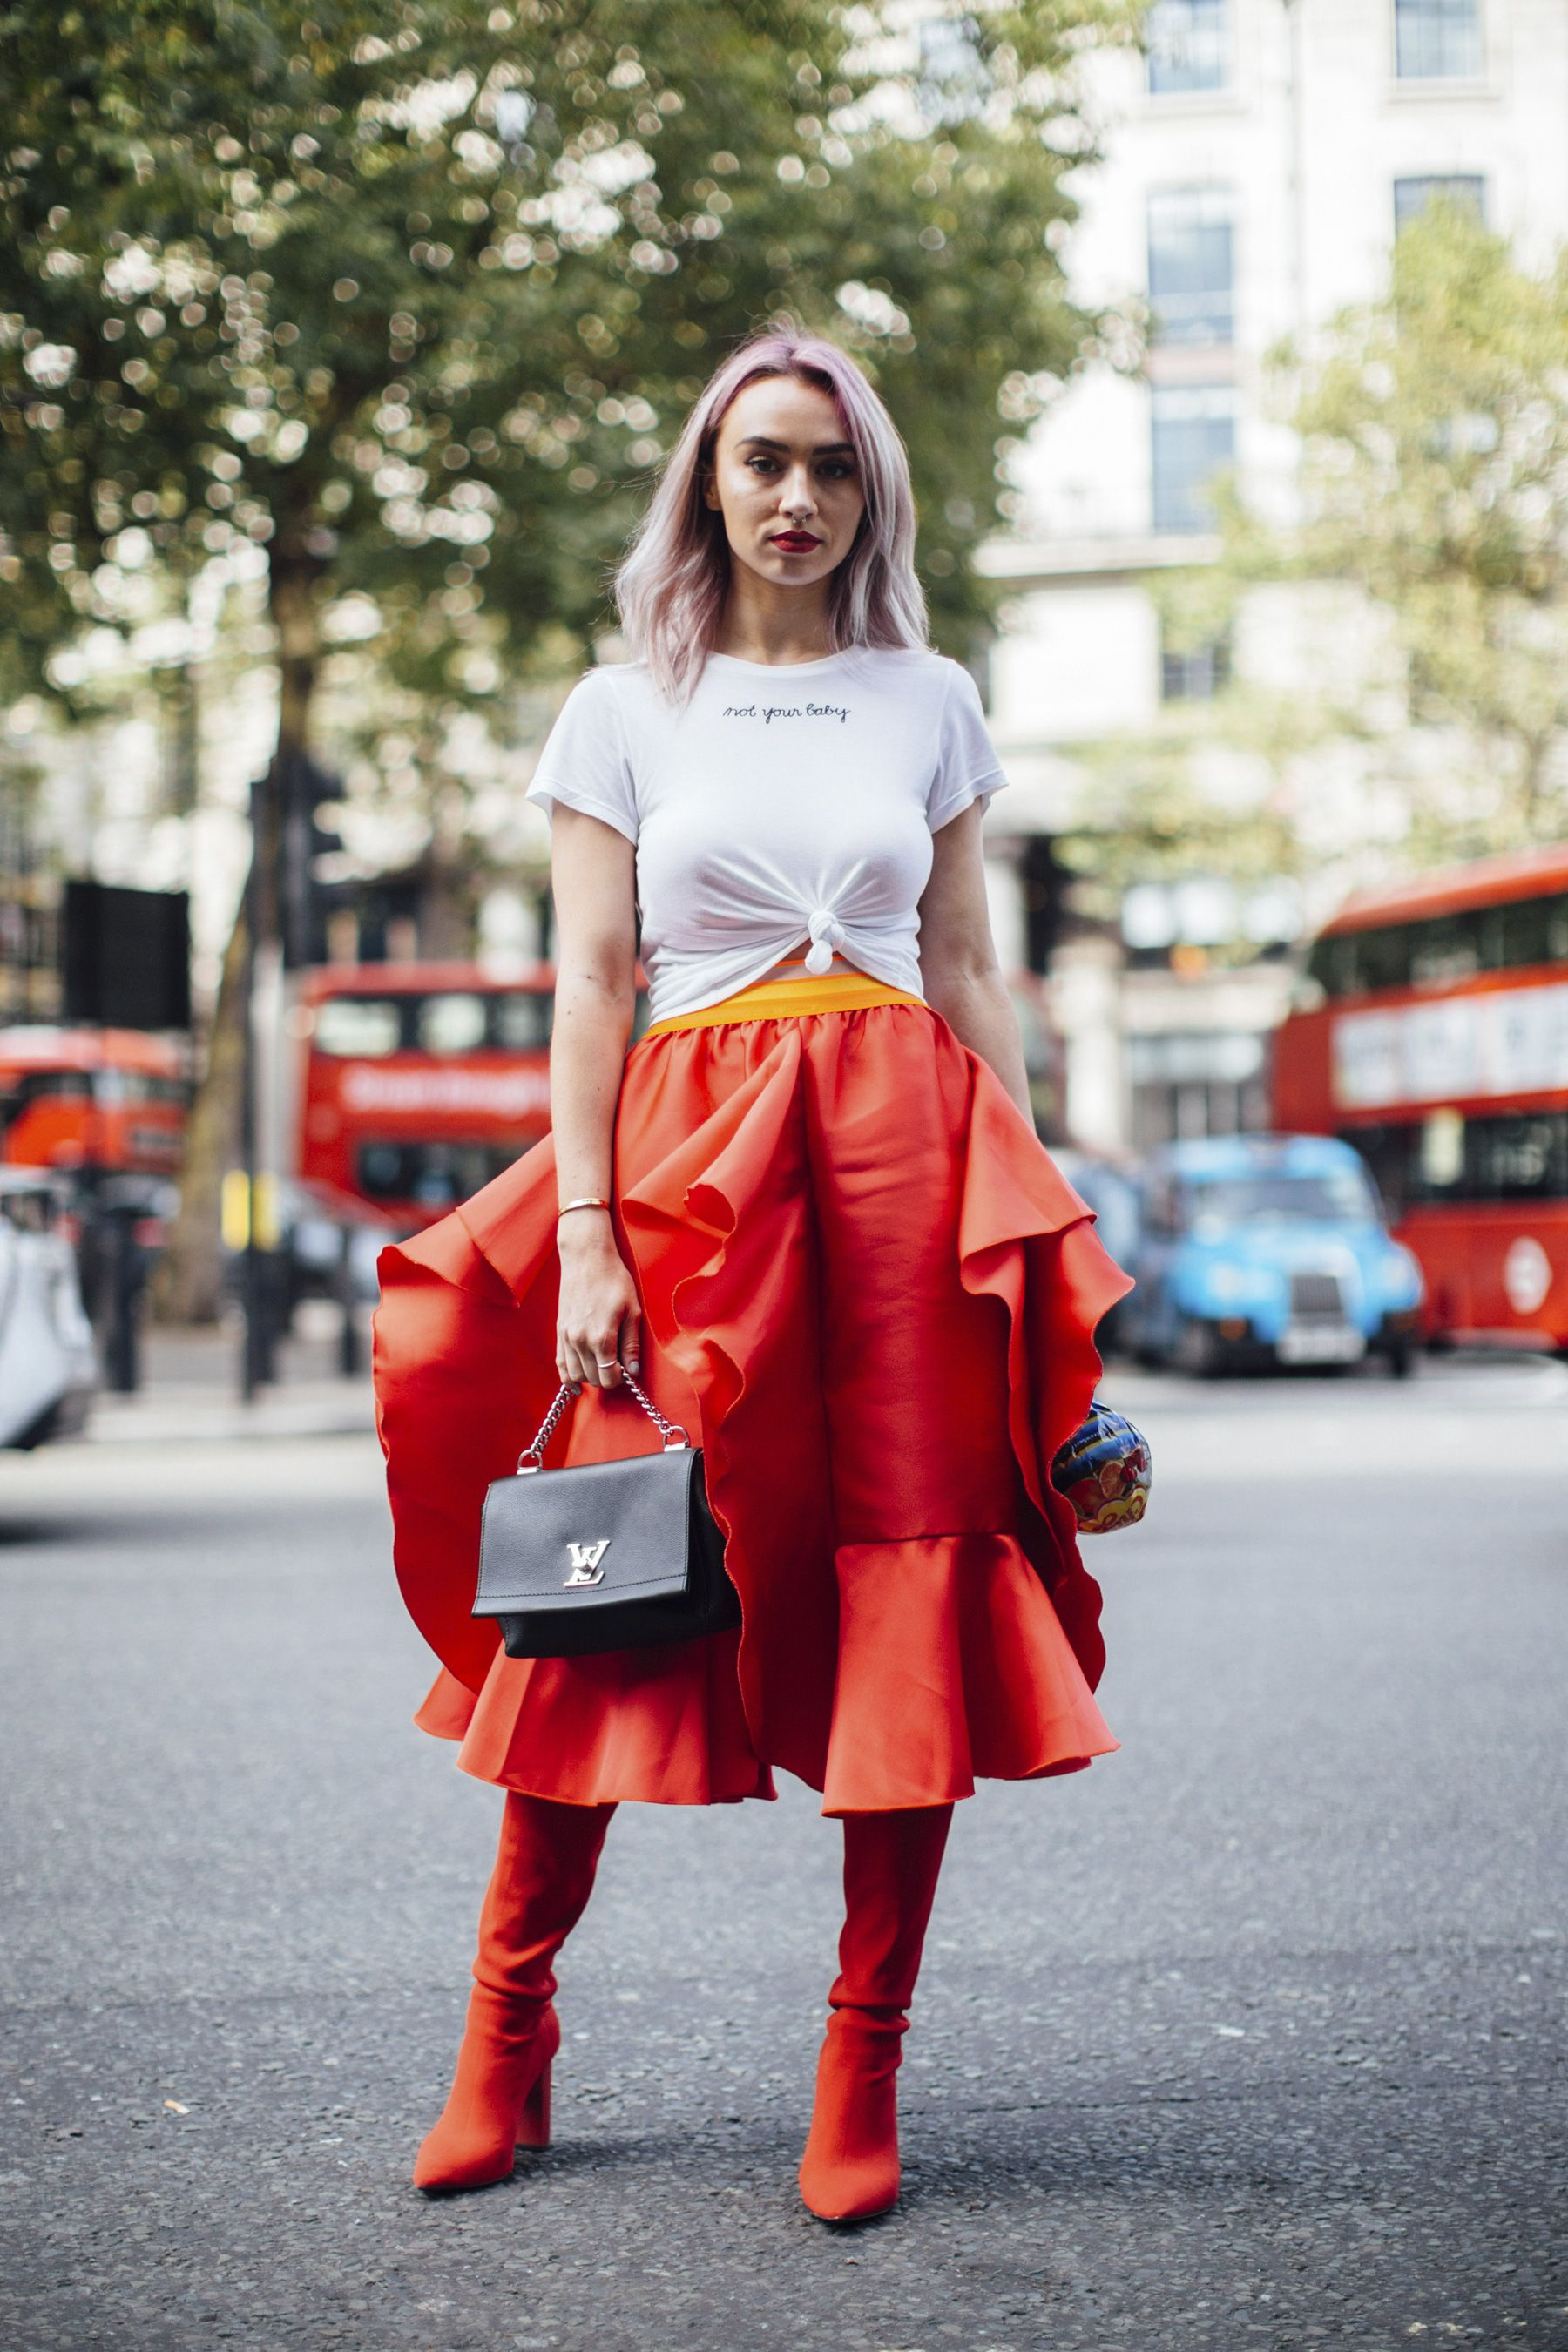 London fashion week street style spring 2018 wardrobe pinterest london fashion street Fashion street style pinterest